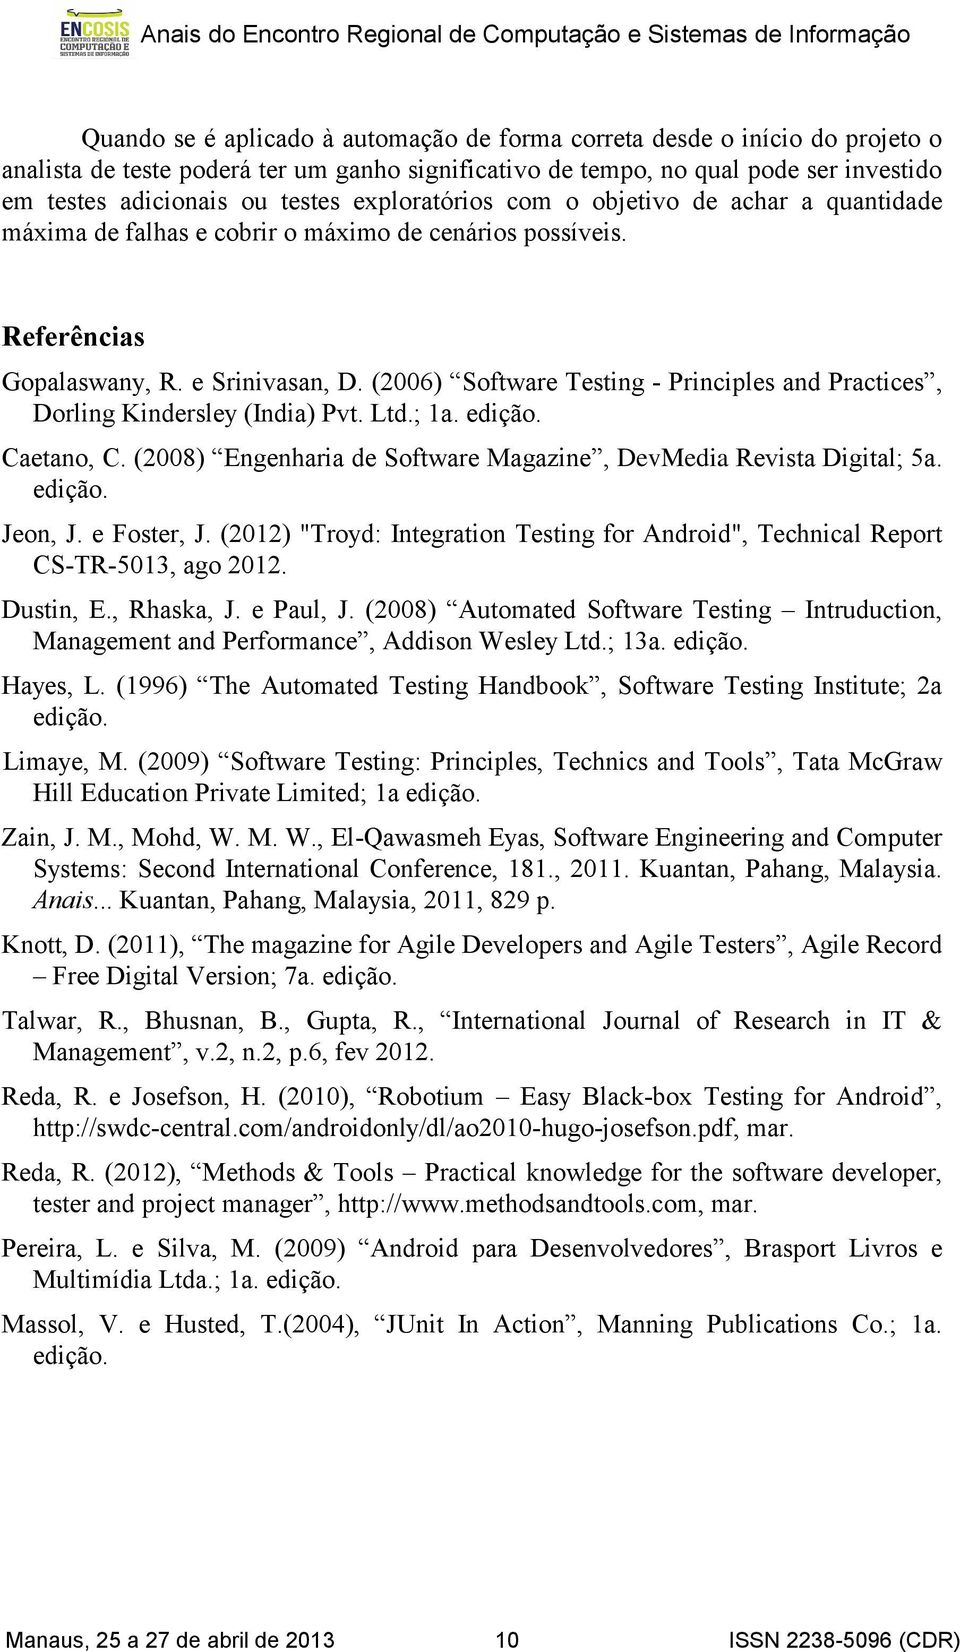 (2006) Software Testing - Principles and Practices, Dorling Kindersley (India) Pvt. Ltd.; 1a. edição. Caetano, C. (2008) Engenharia de Software Magazine, DevMedia Revista Digital; 5a. edição. Jeon, J.